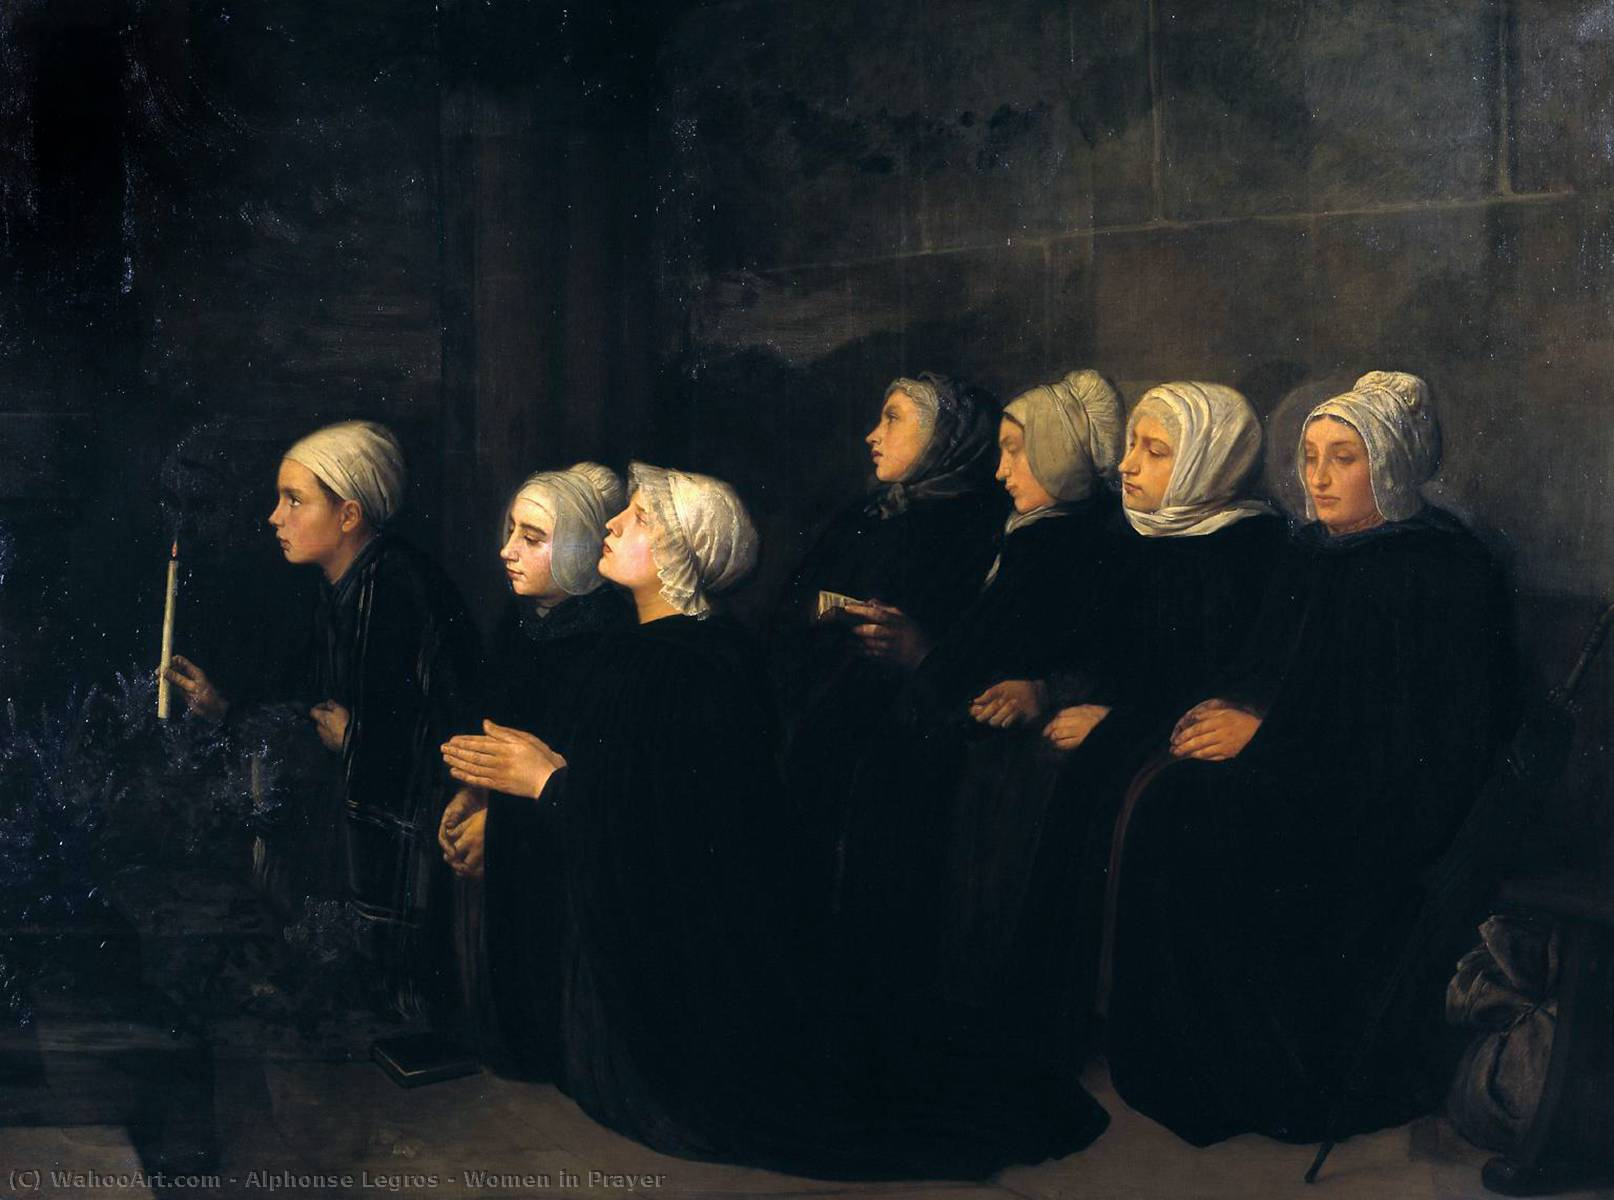 Alphonse-Legros-Women-in-Prayer.JPG (942×700)